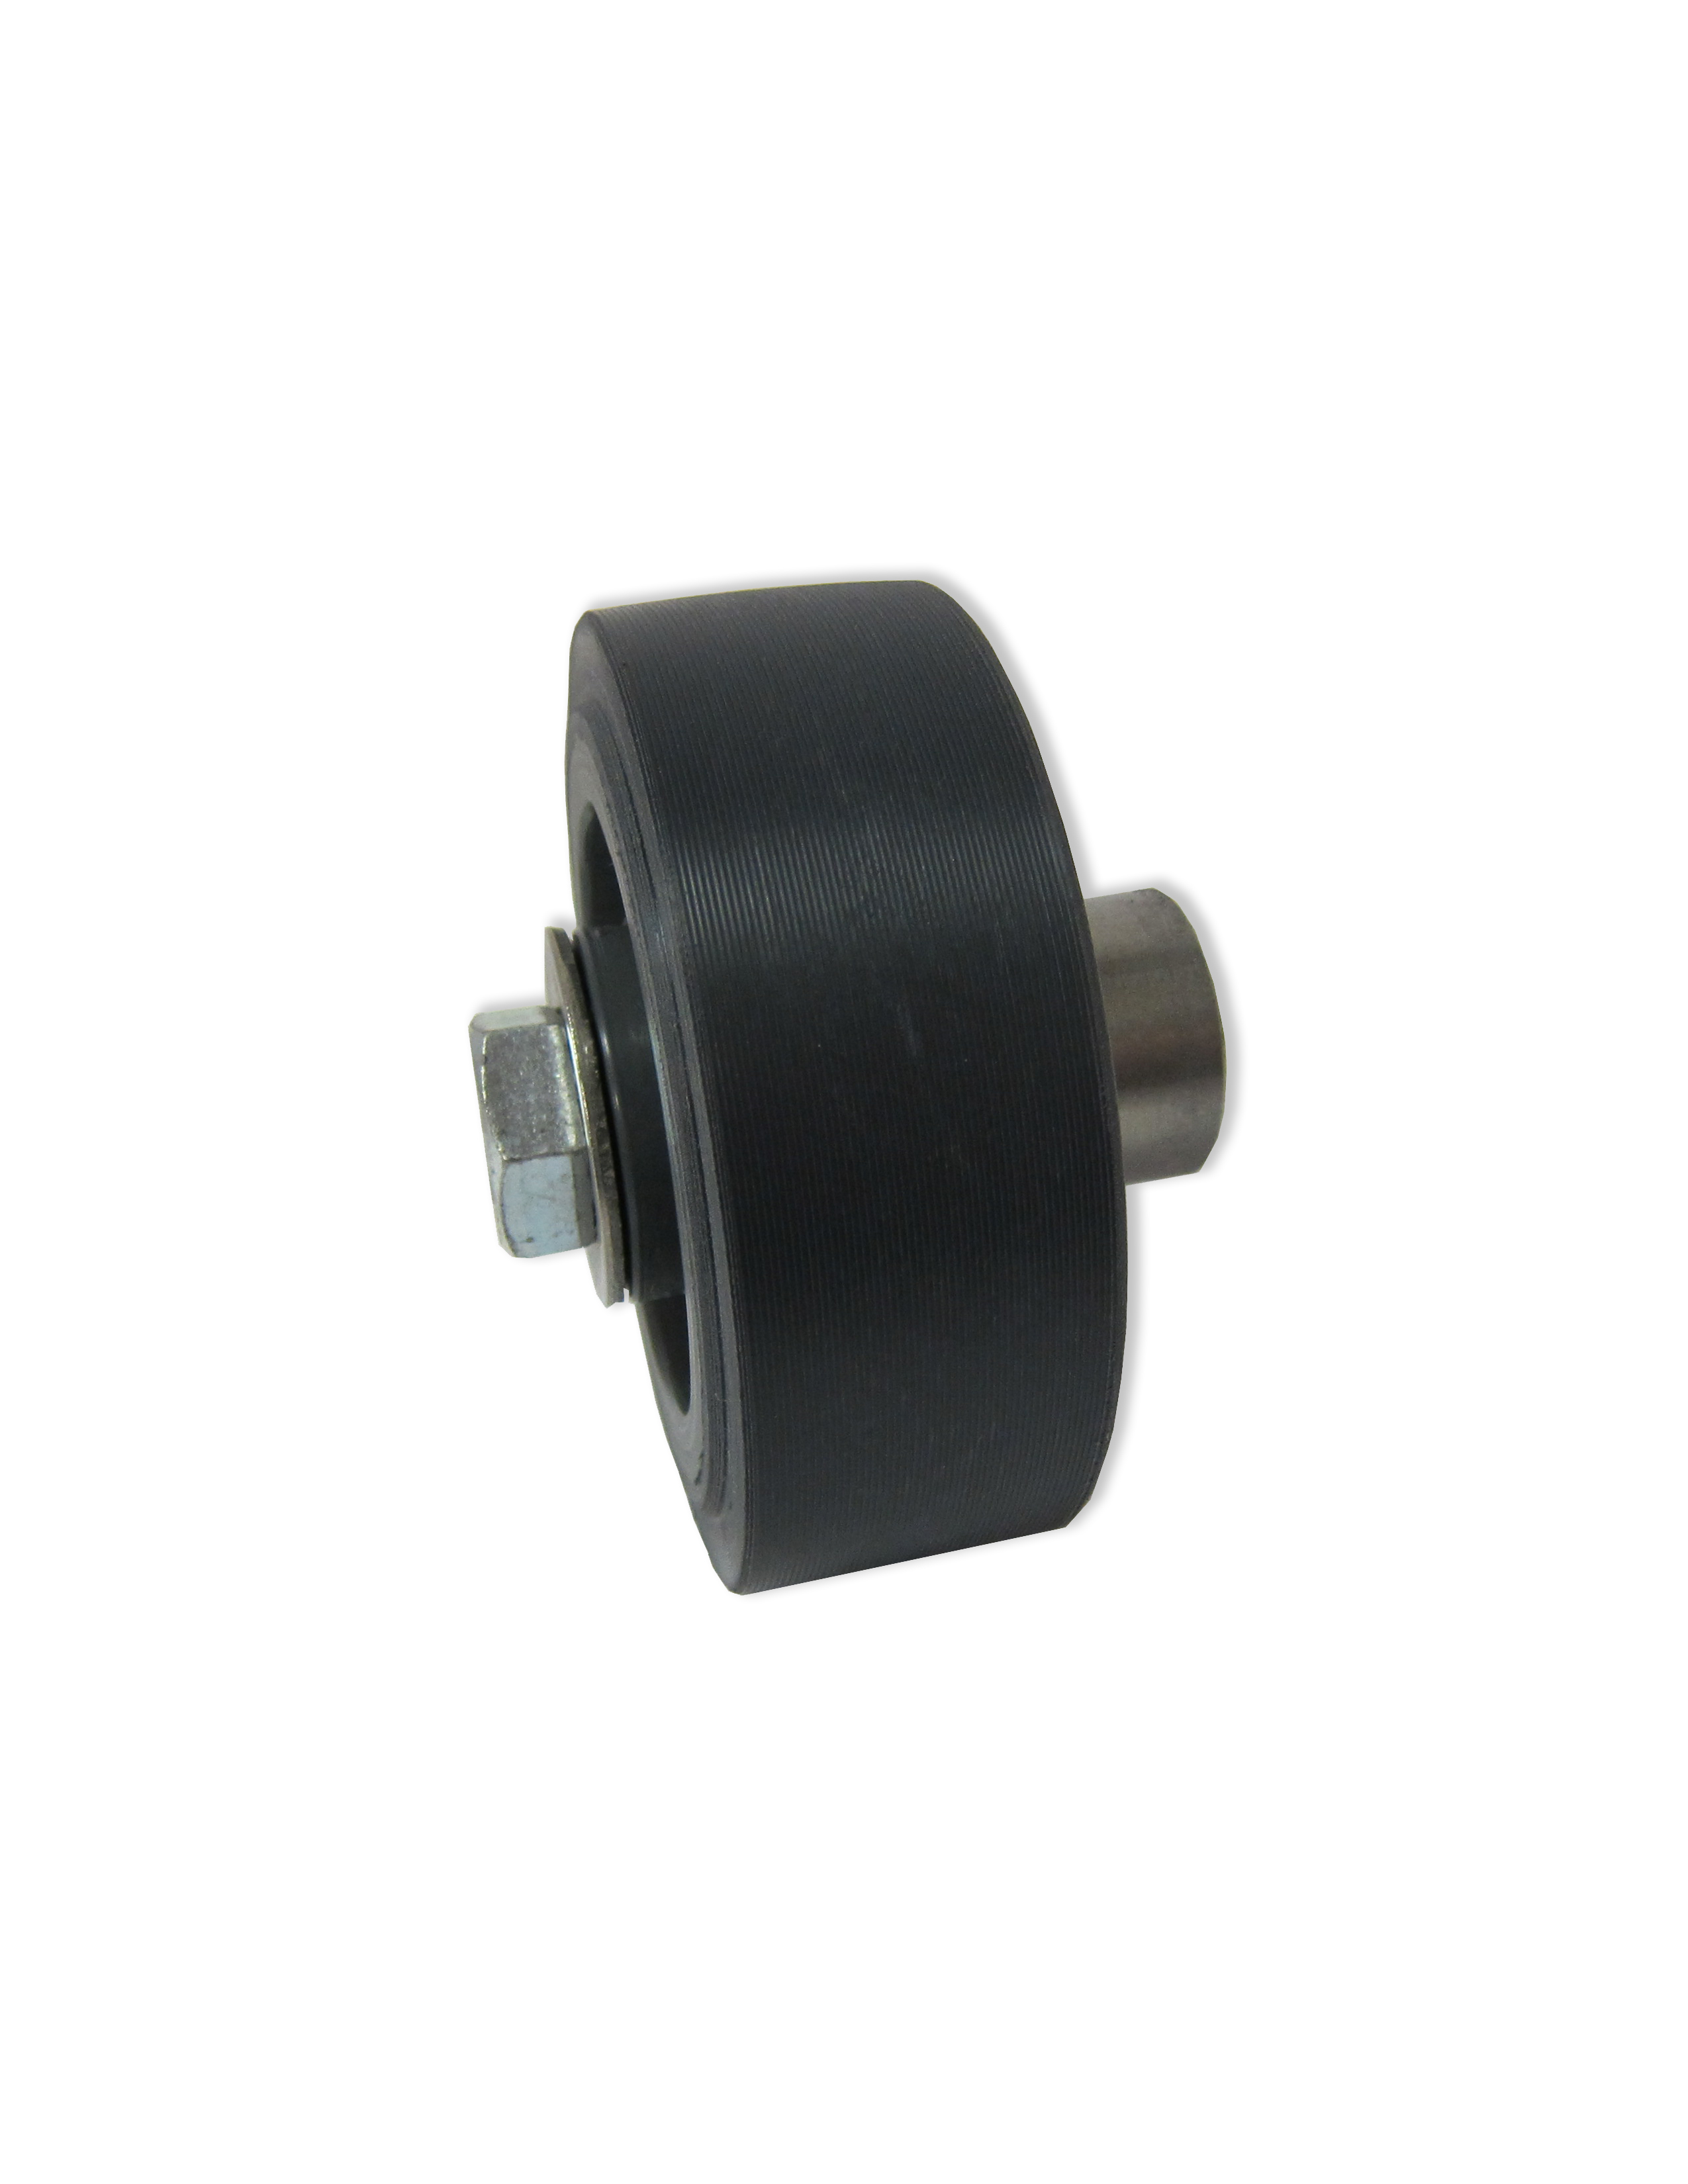 936-007 2 x 48 belt sander replacement drive pulley, 2 x 48 belt sander replacement drive pulley, belt sander, 936-007 2 x 48 belt inch sander replacement drive pulley, 2 x 48 inch sander, 48 inch sander,936-007 2 x 48 inch belt sander replacement drive pulley